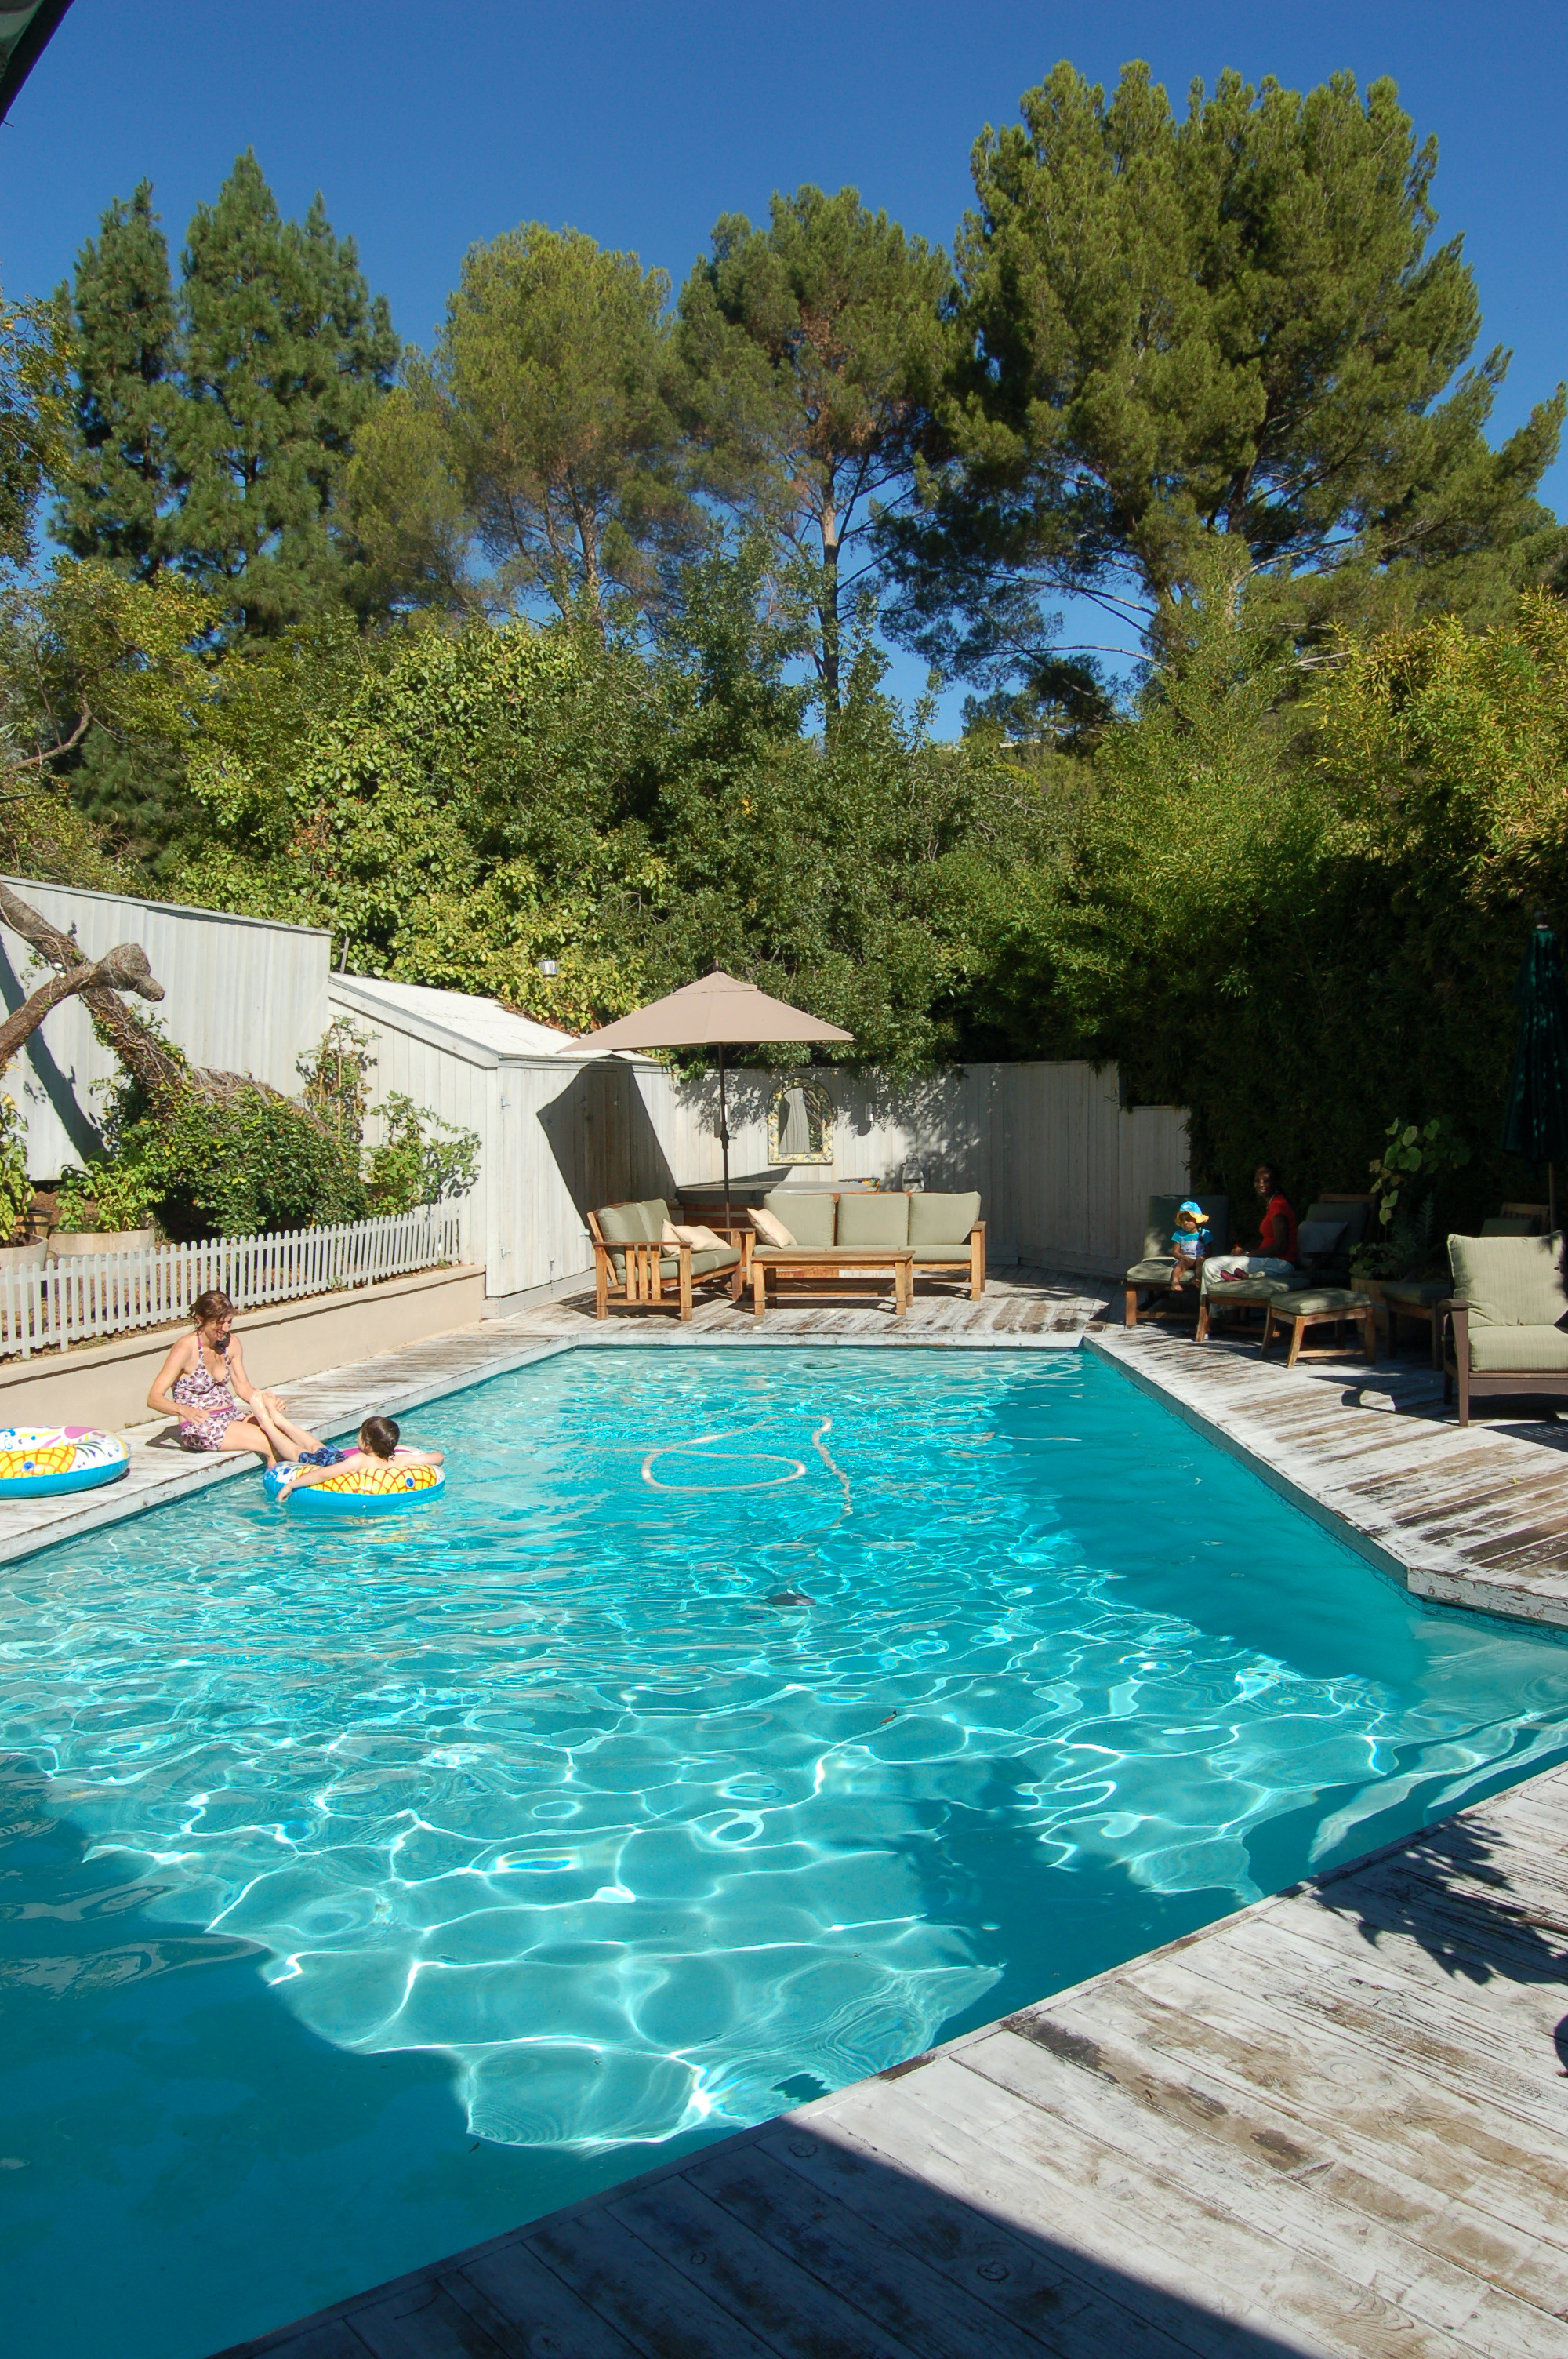 The Pool at Hollywood Hills, LA